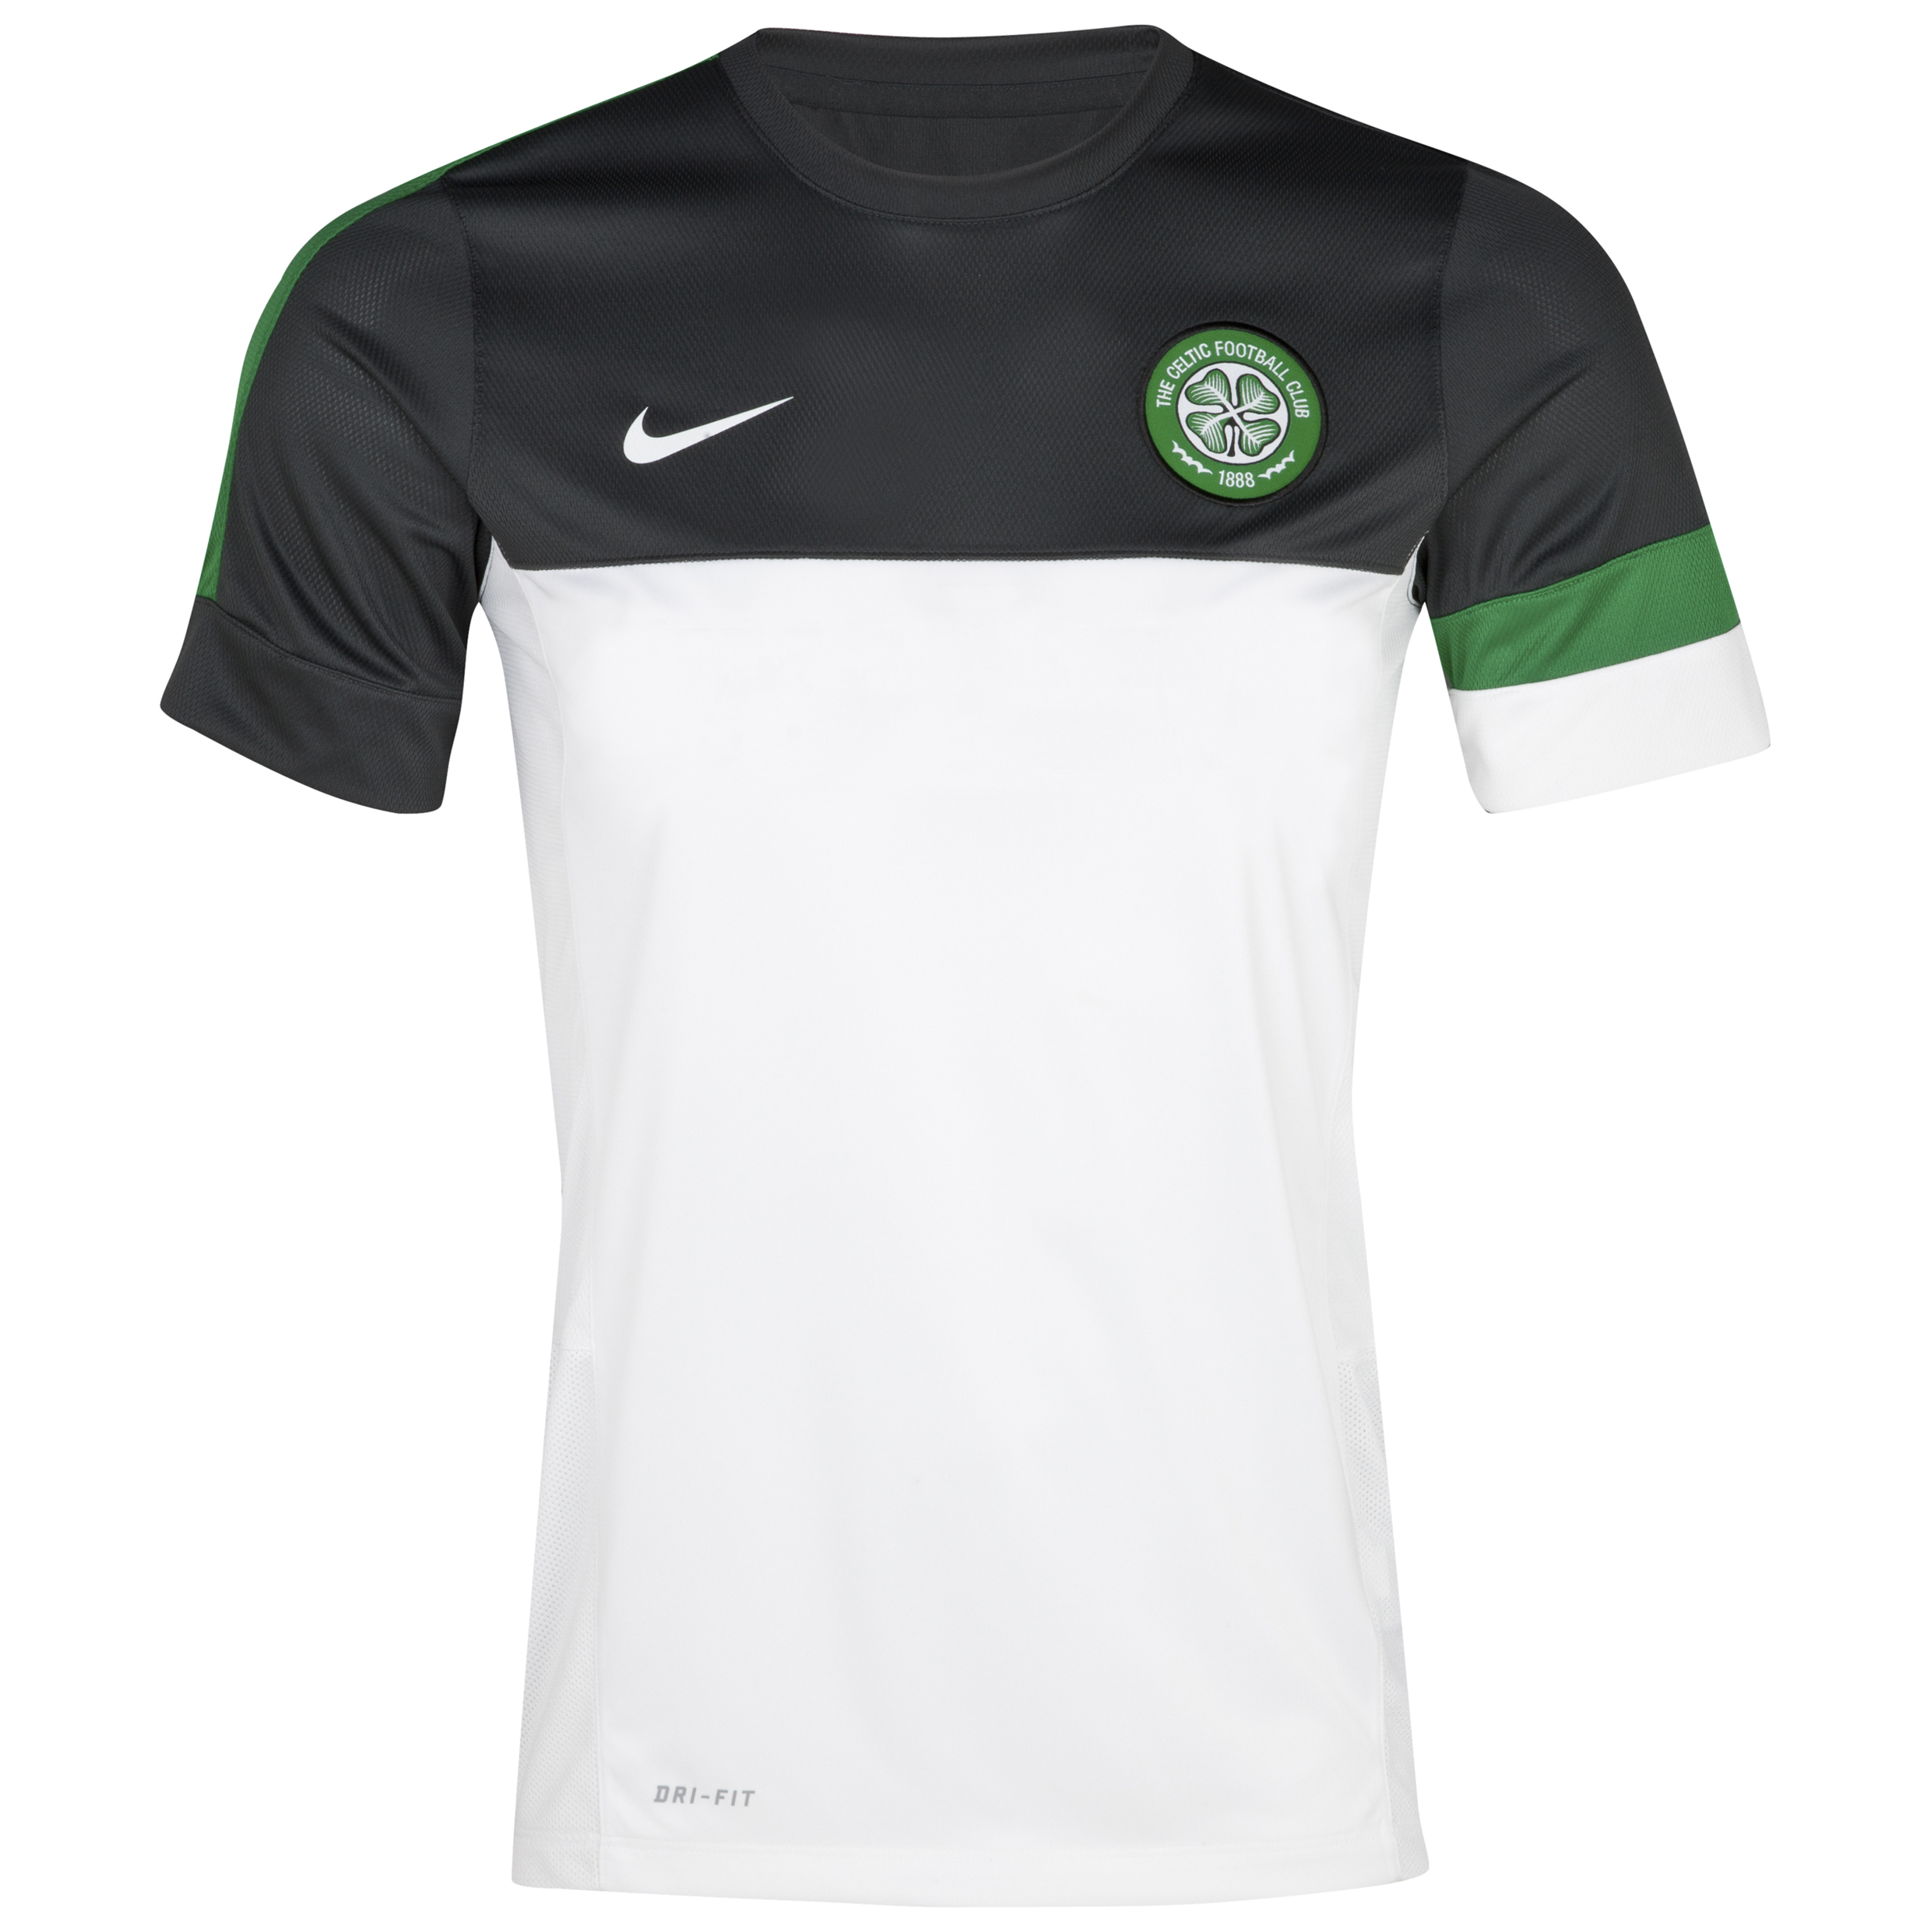 Celtic Short Sleeve Training Top 1 - White/Anthracite/Victory Green/White - Youths